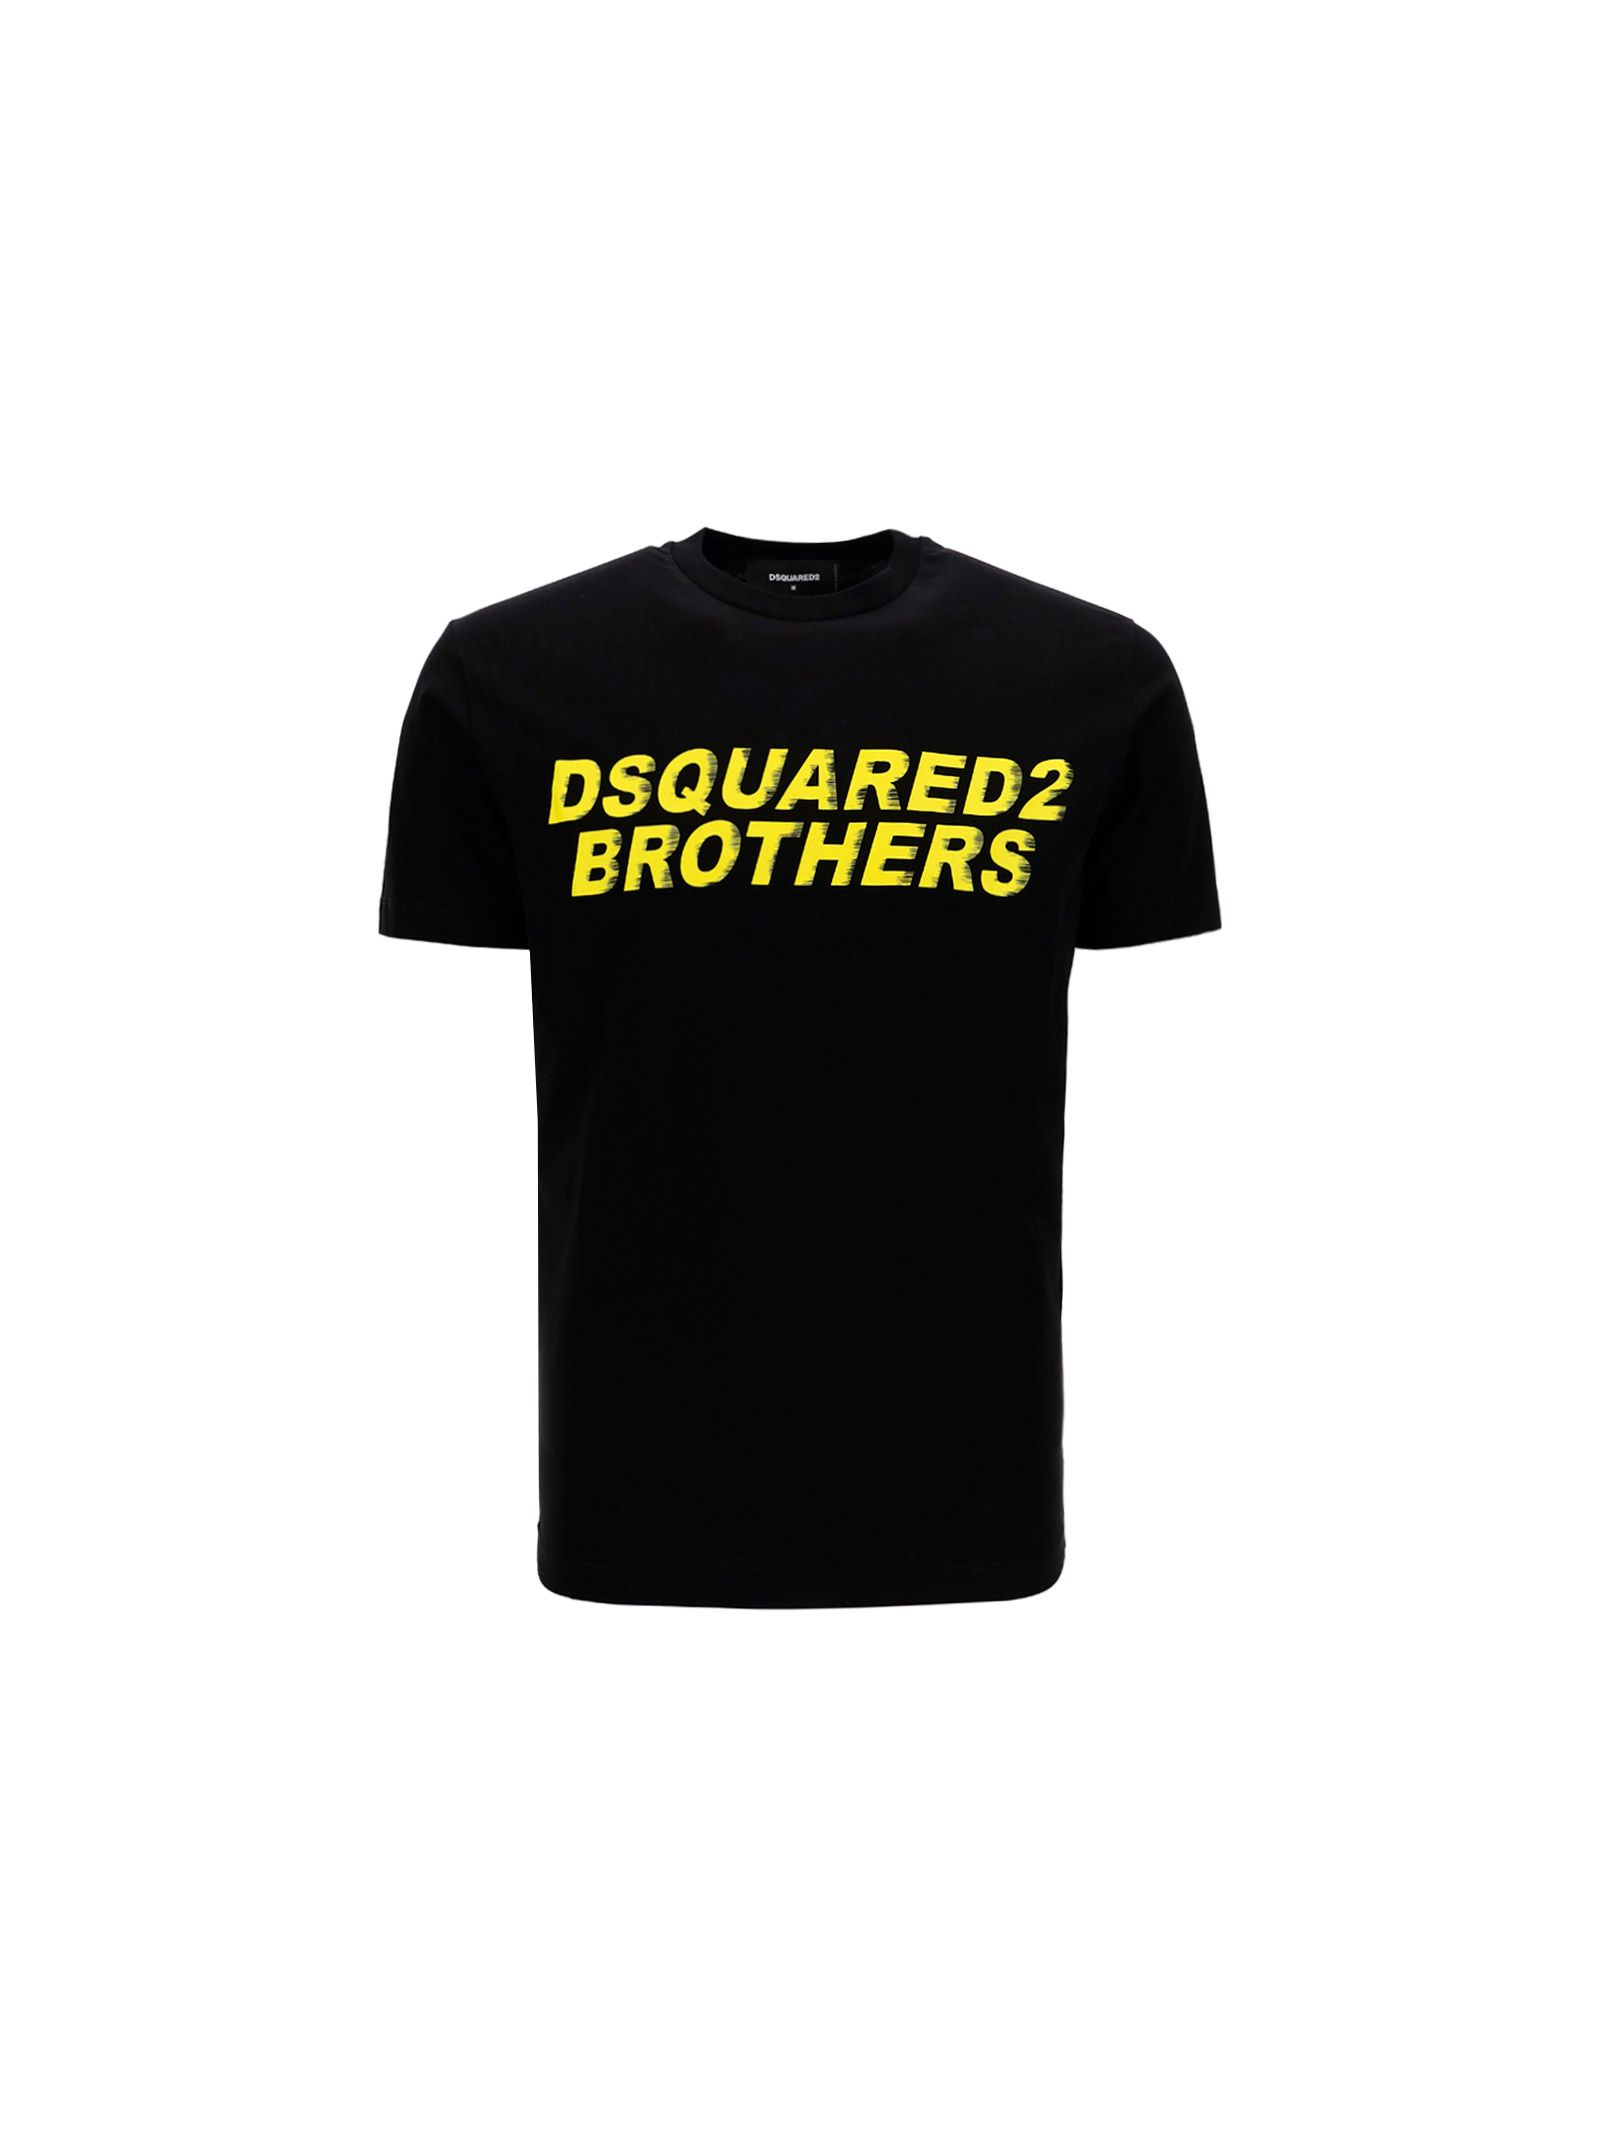 Dsquared2 DSQUARED2 MEN'S S74GD0825S22427900 BLACK OTHER MATERIALS T-SHIRT